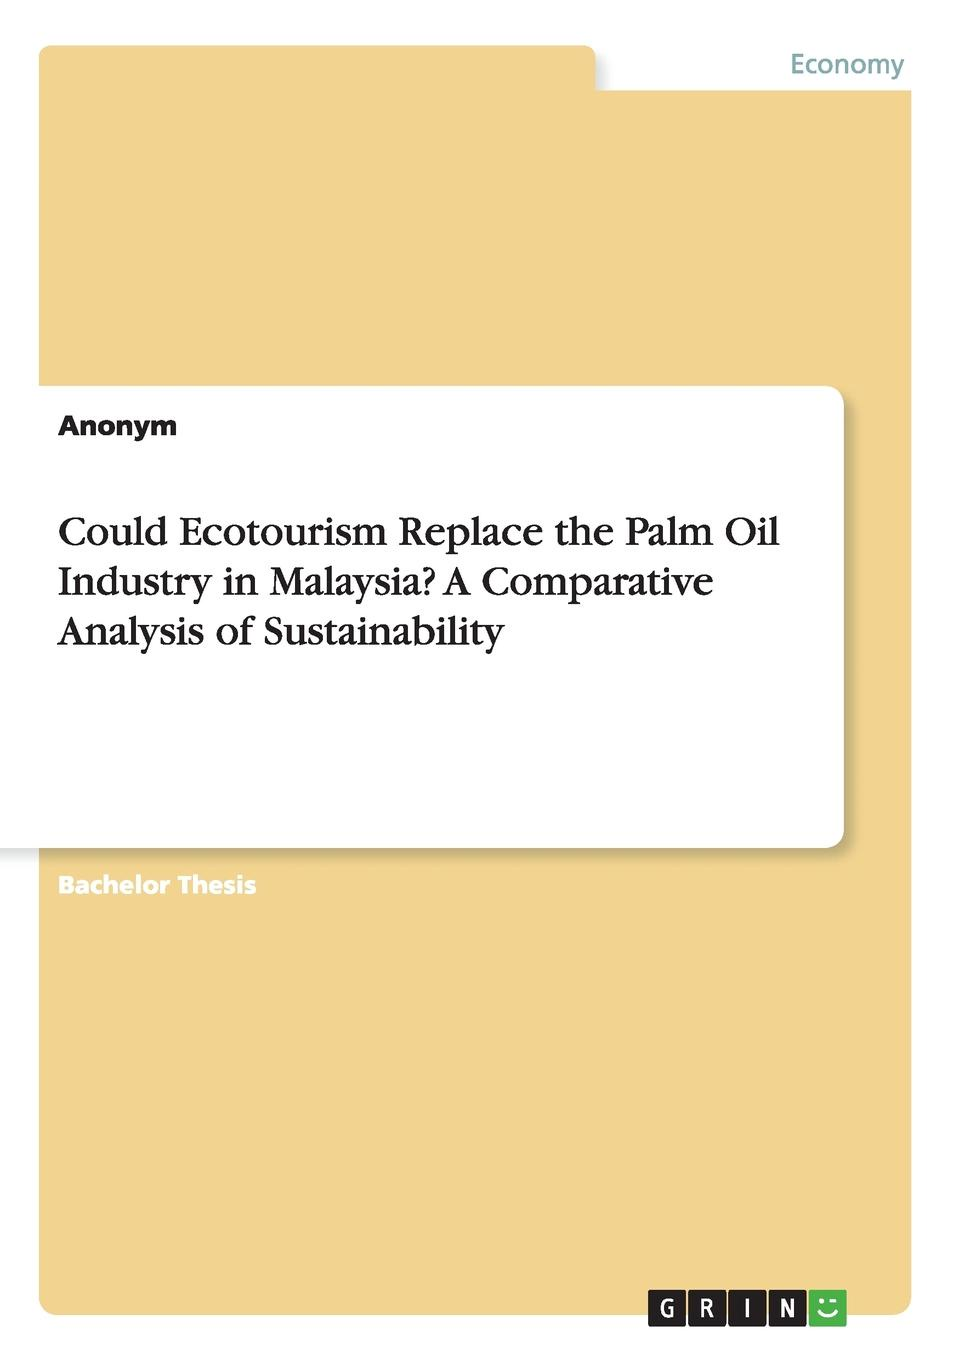 Фото - Неустановленный автор Could Ecotourism Replace the Palm Oil Industry in Malaysia. A Comparative Analysis of Sustainability agent based snort in distributed environment